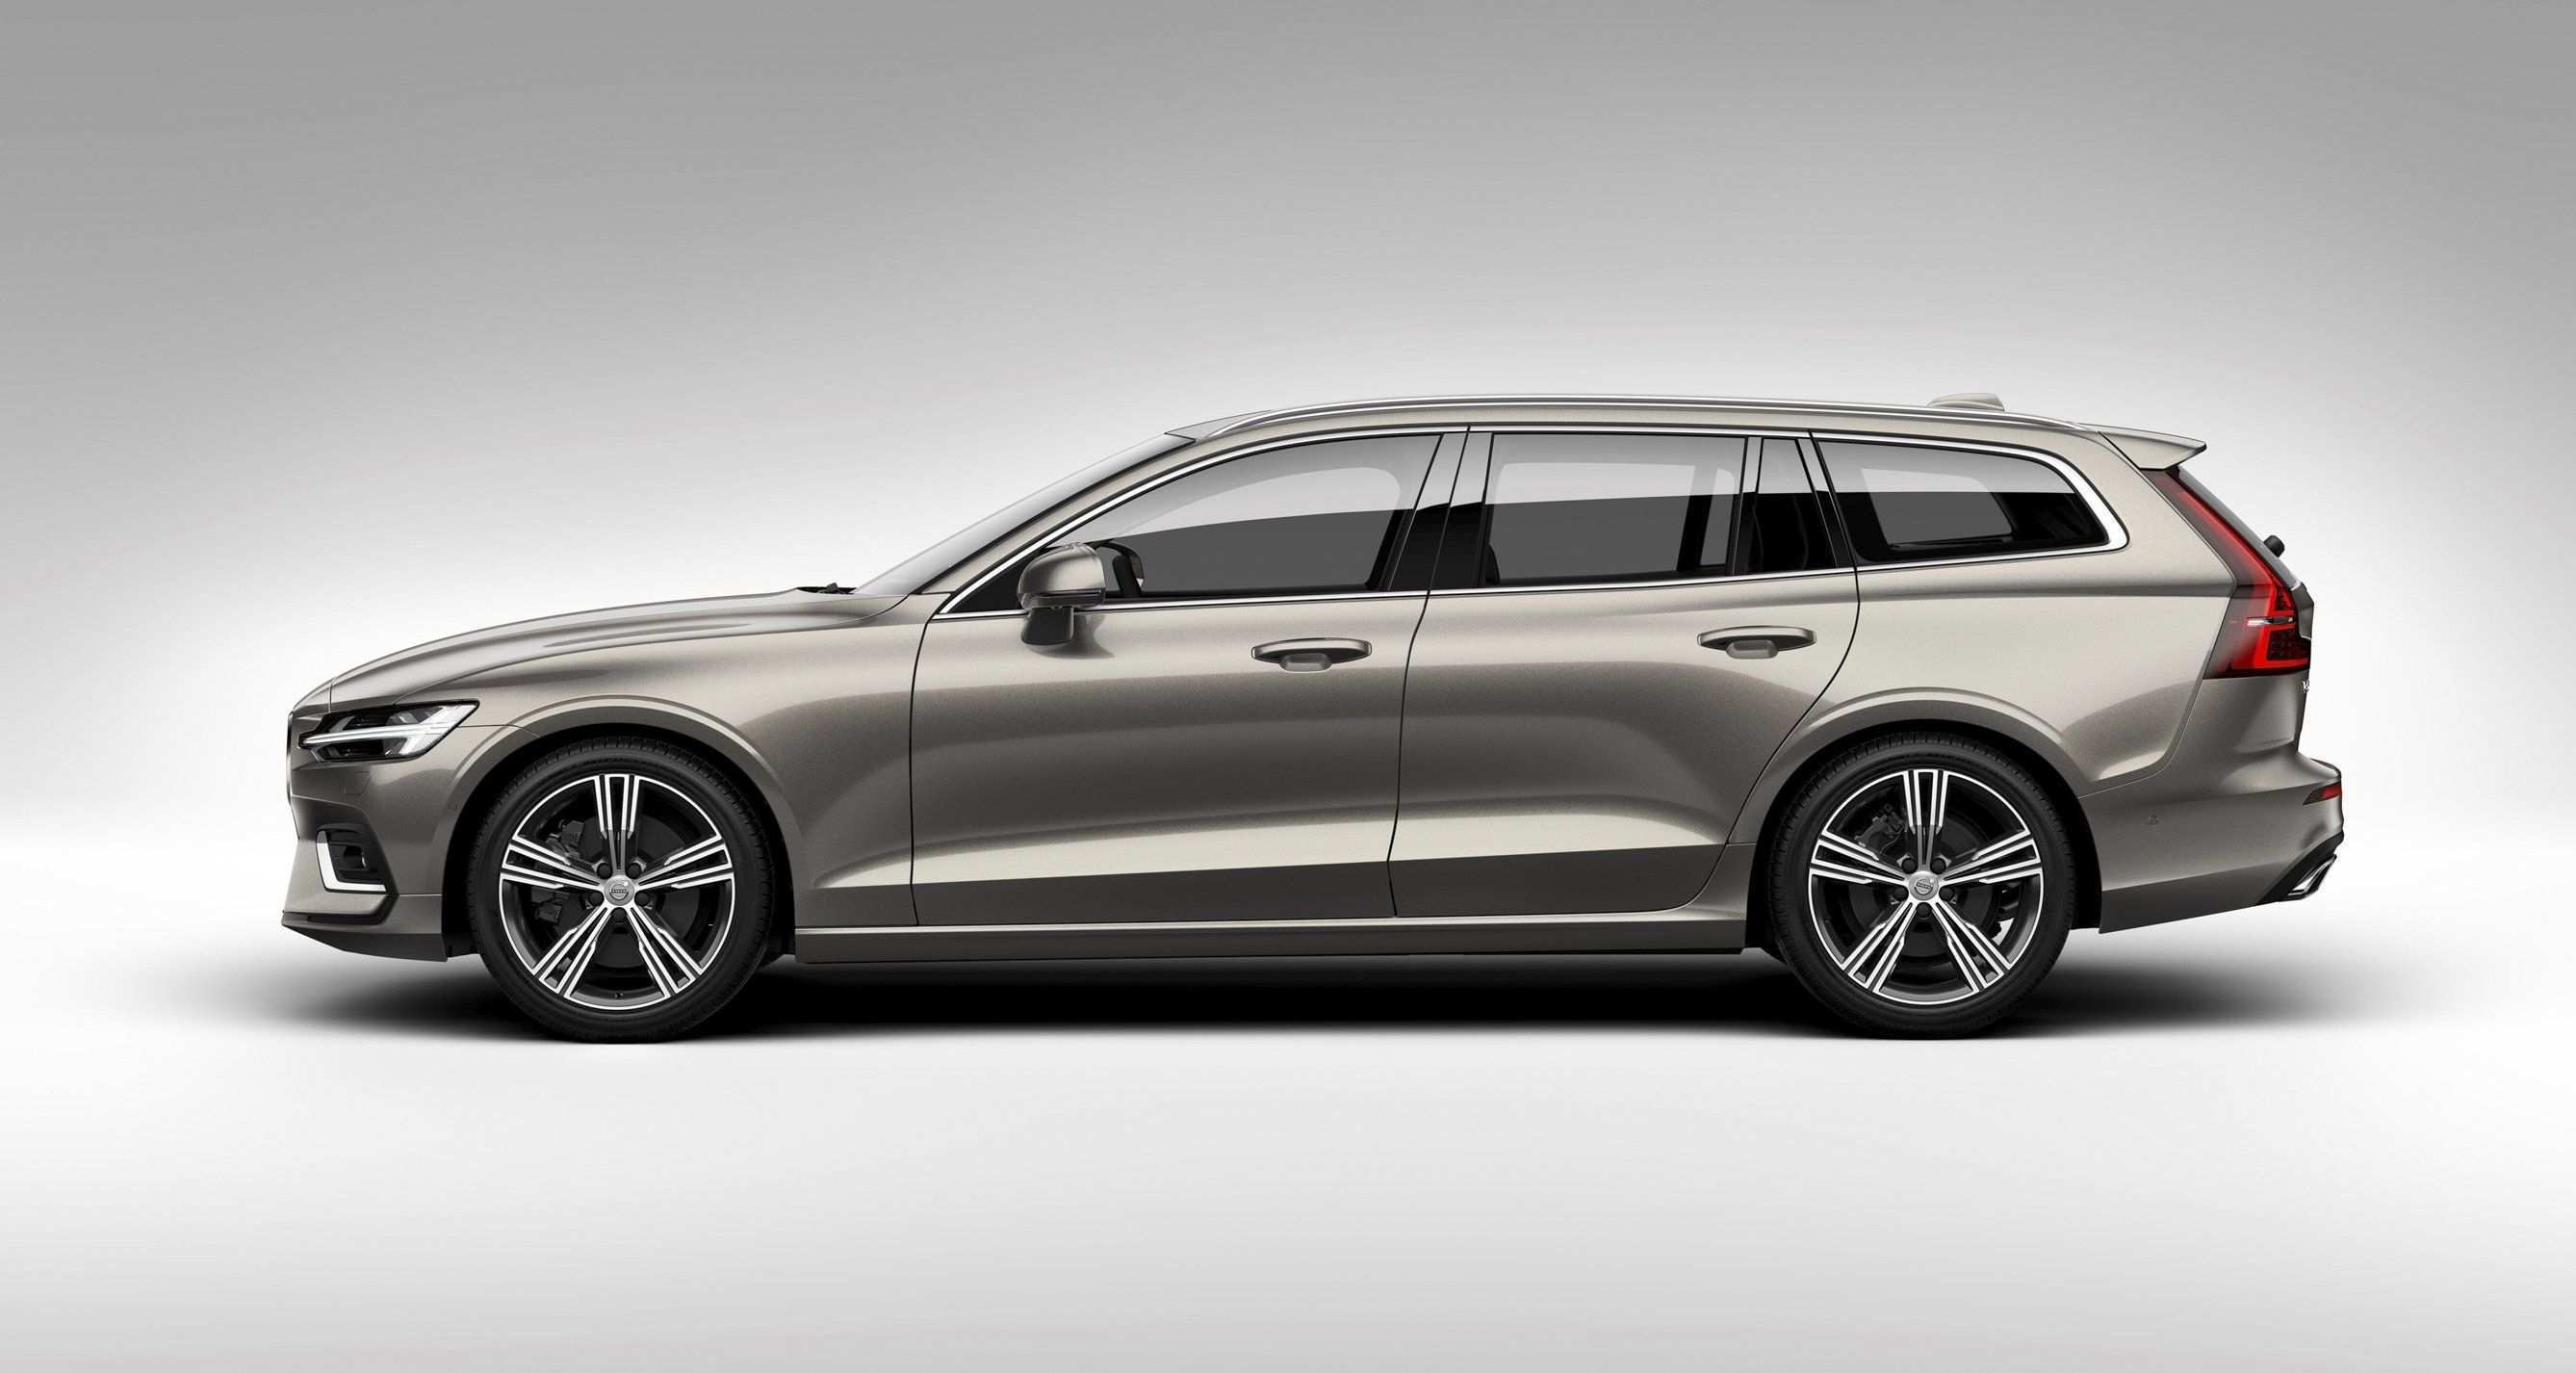 94 Best Review Volvo 2019 Station Wagon Price for Volvo 2019 Station Wagon